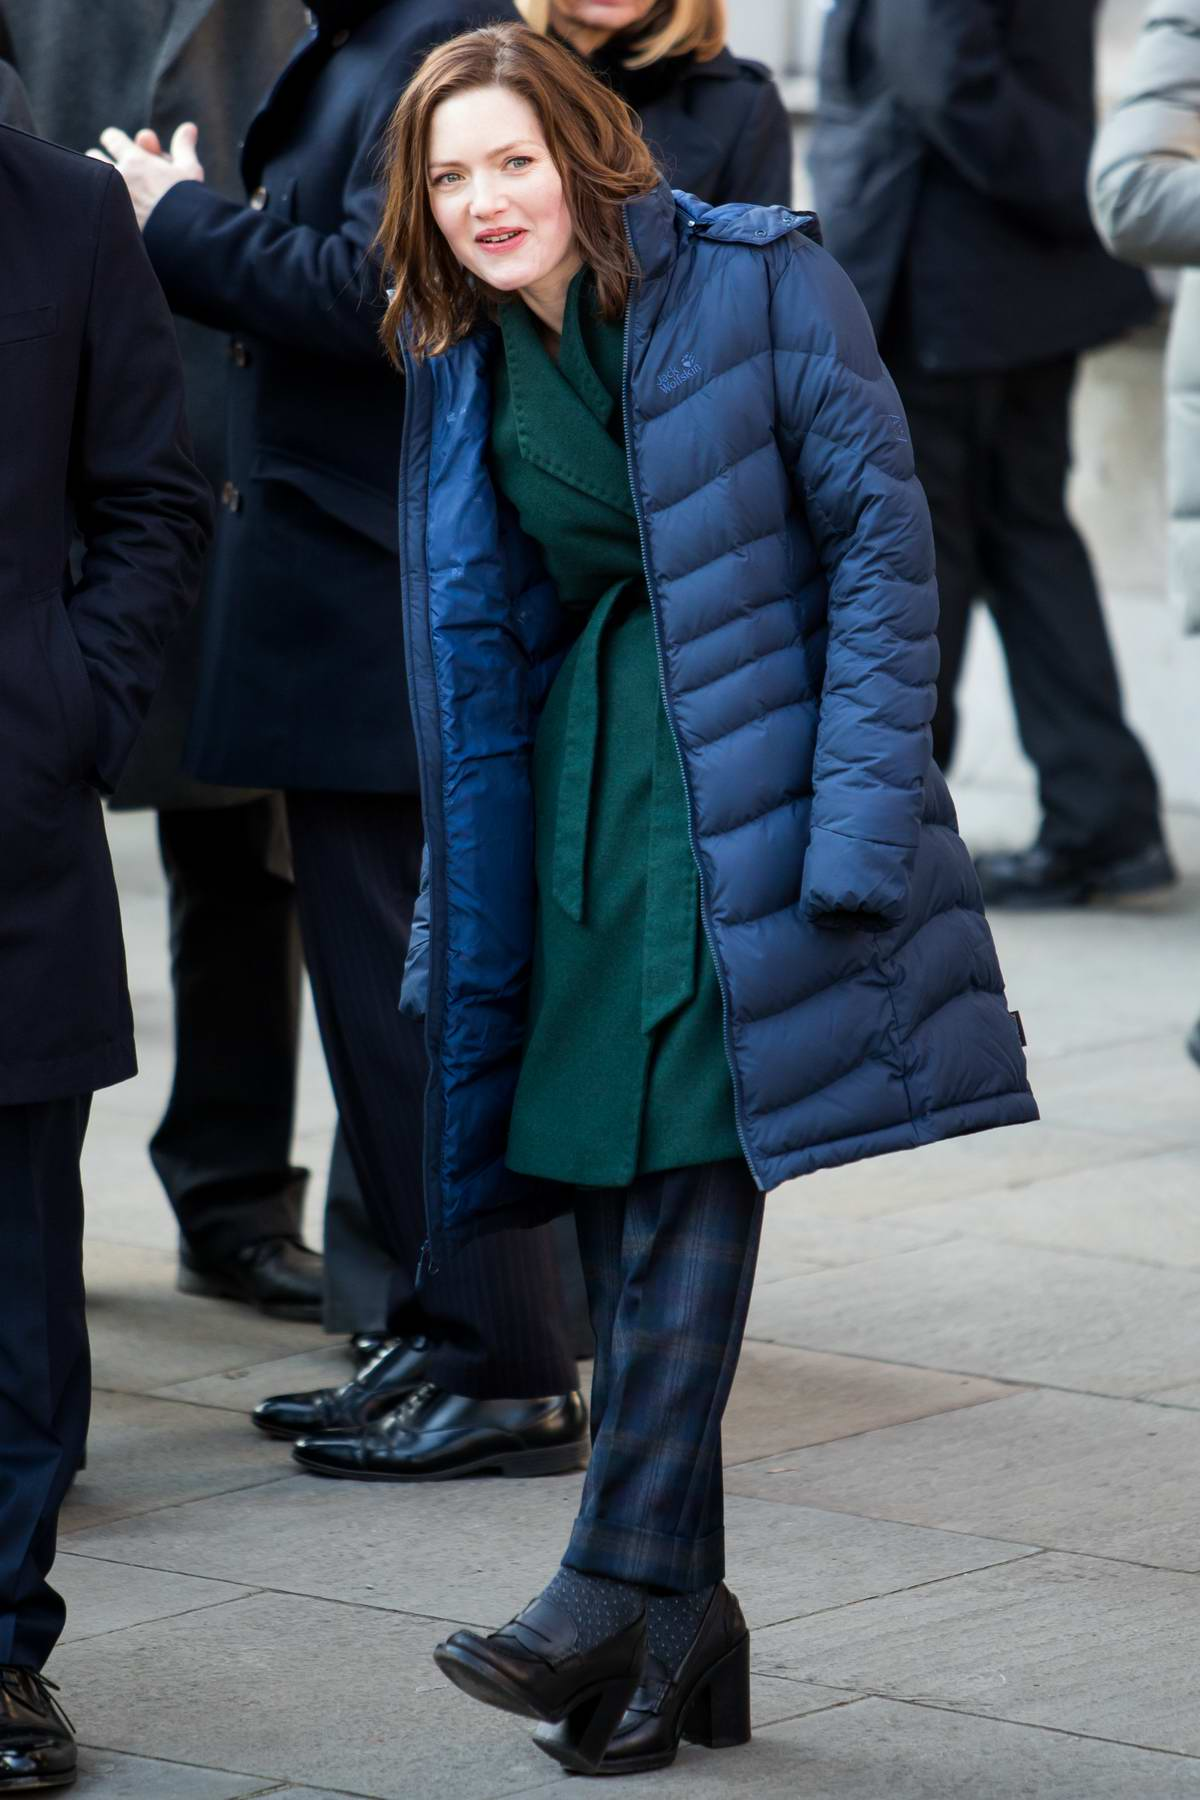 Holliday Grainger spotted while filming upcoming BBC drama 'The Capture' in London, UK